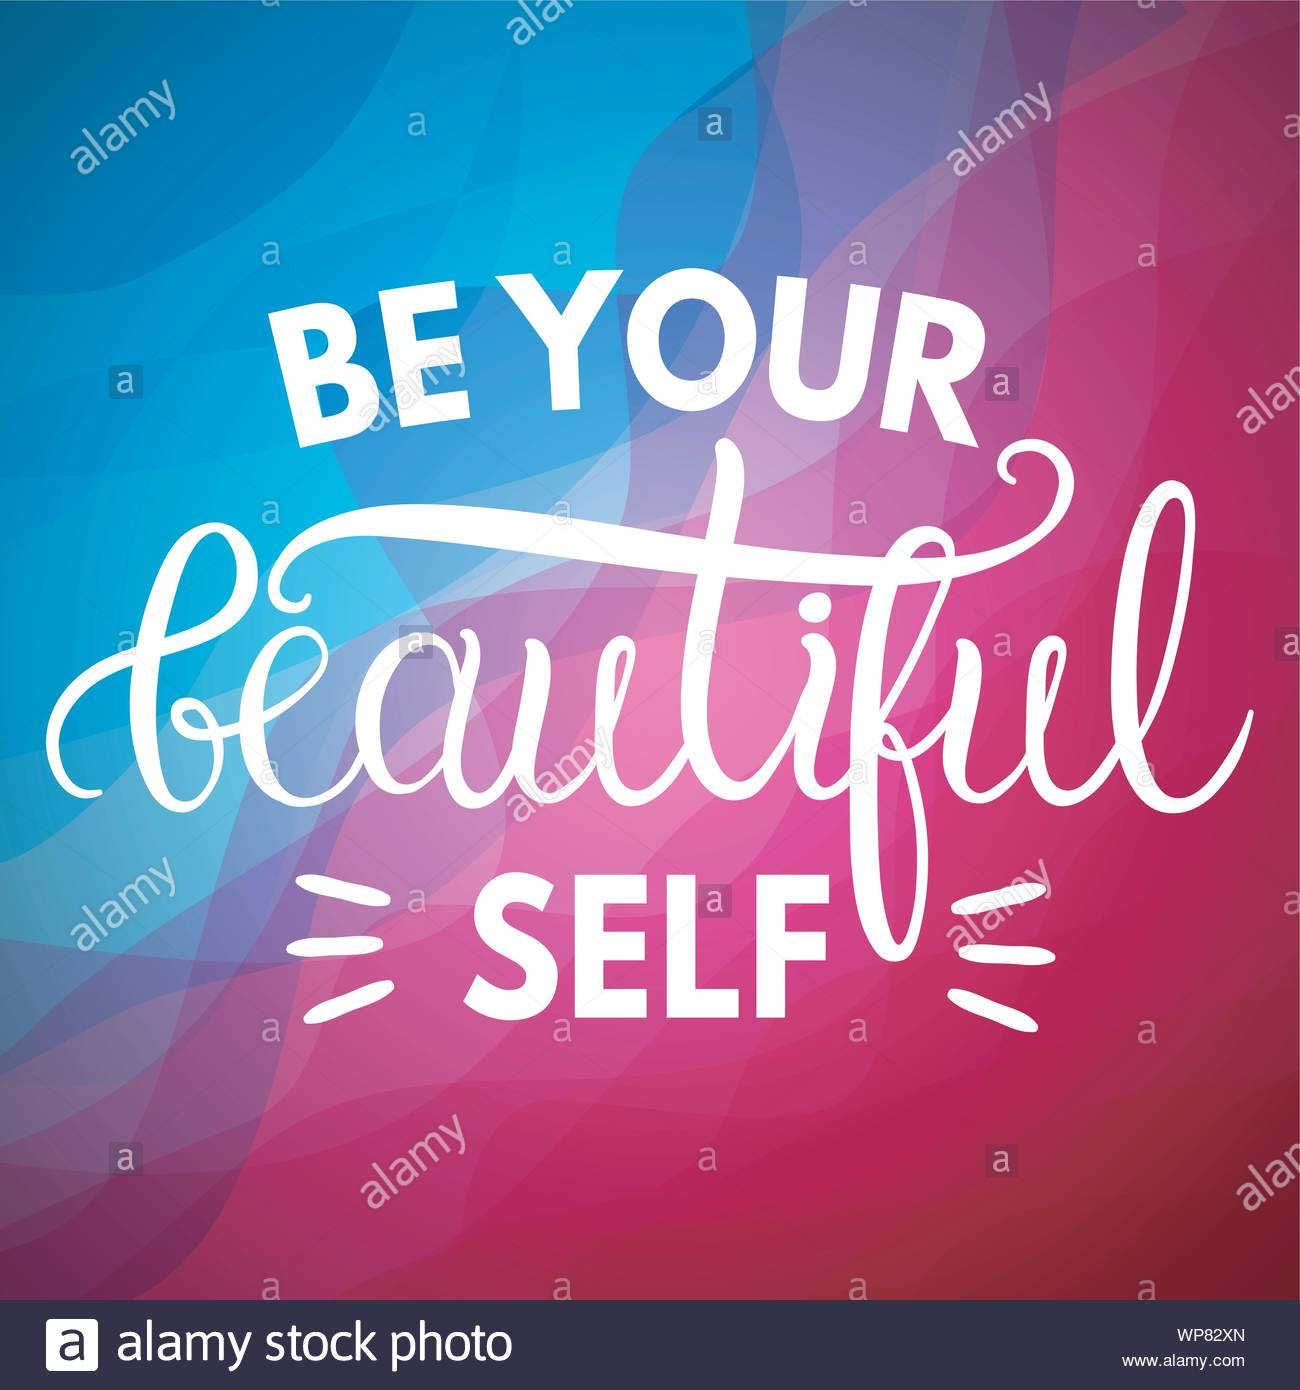 Be Your Beautiful Self Inspirational Quotes And Motivational ...